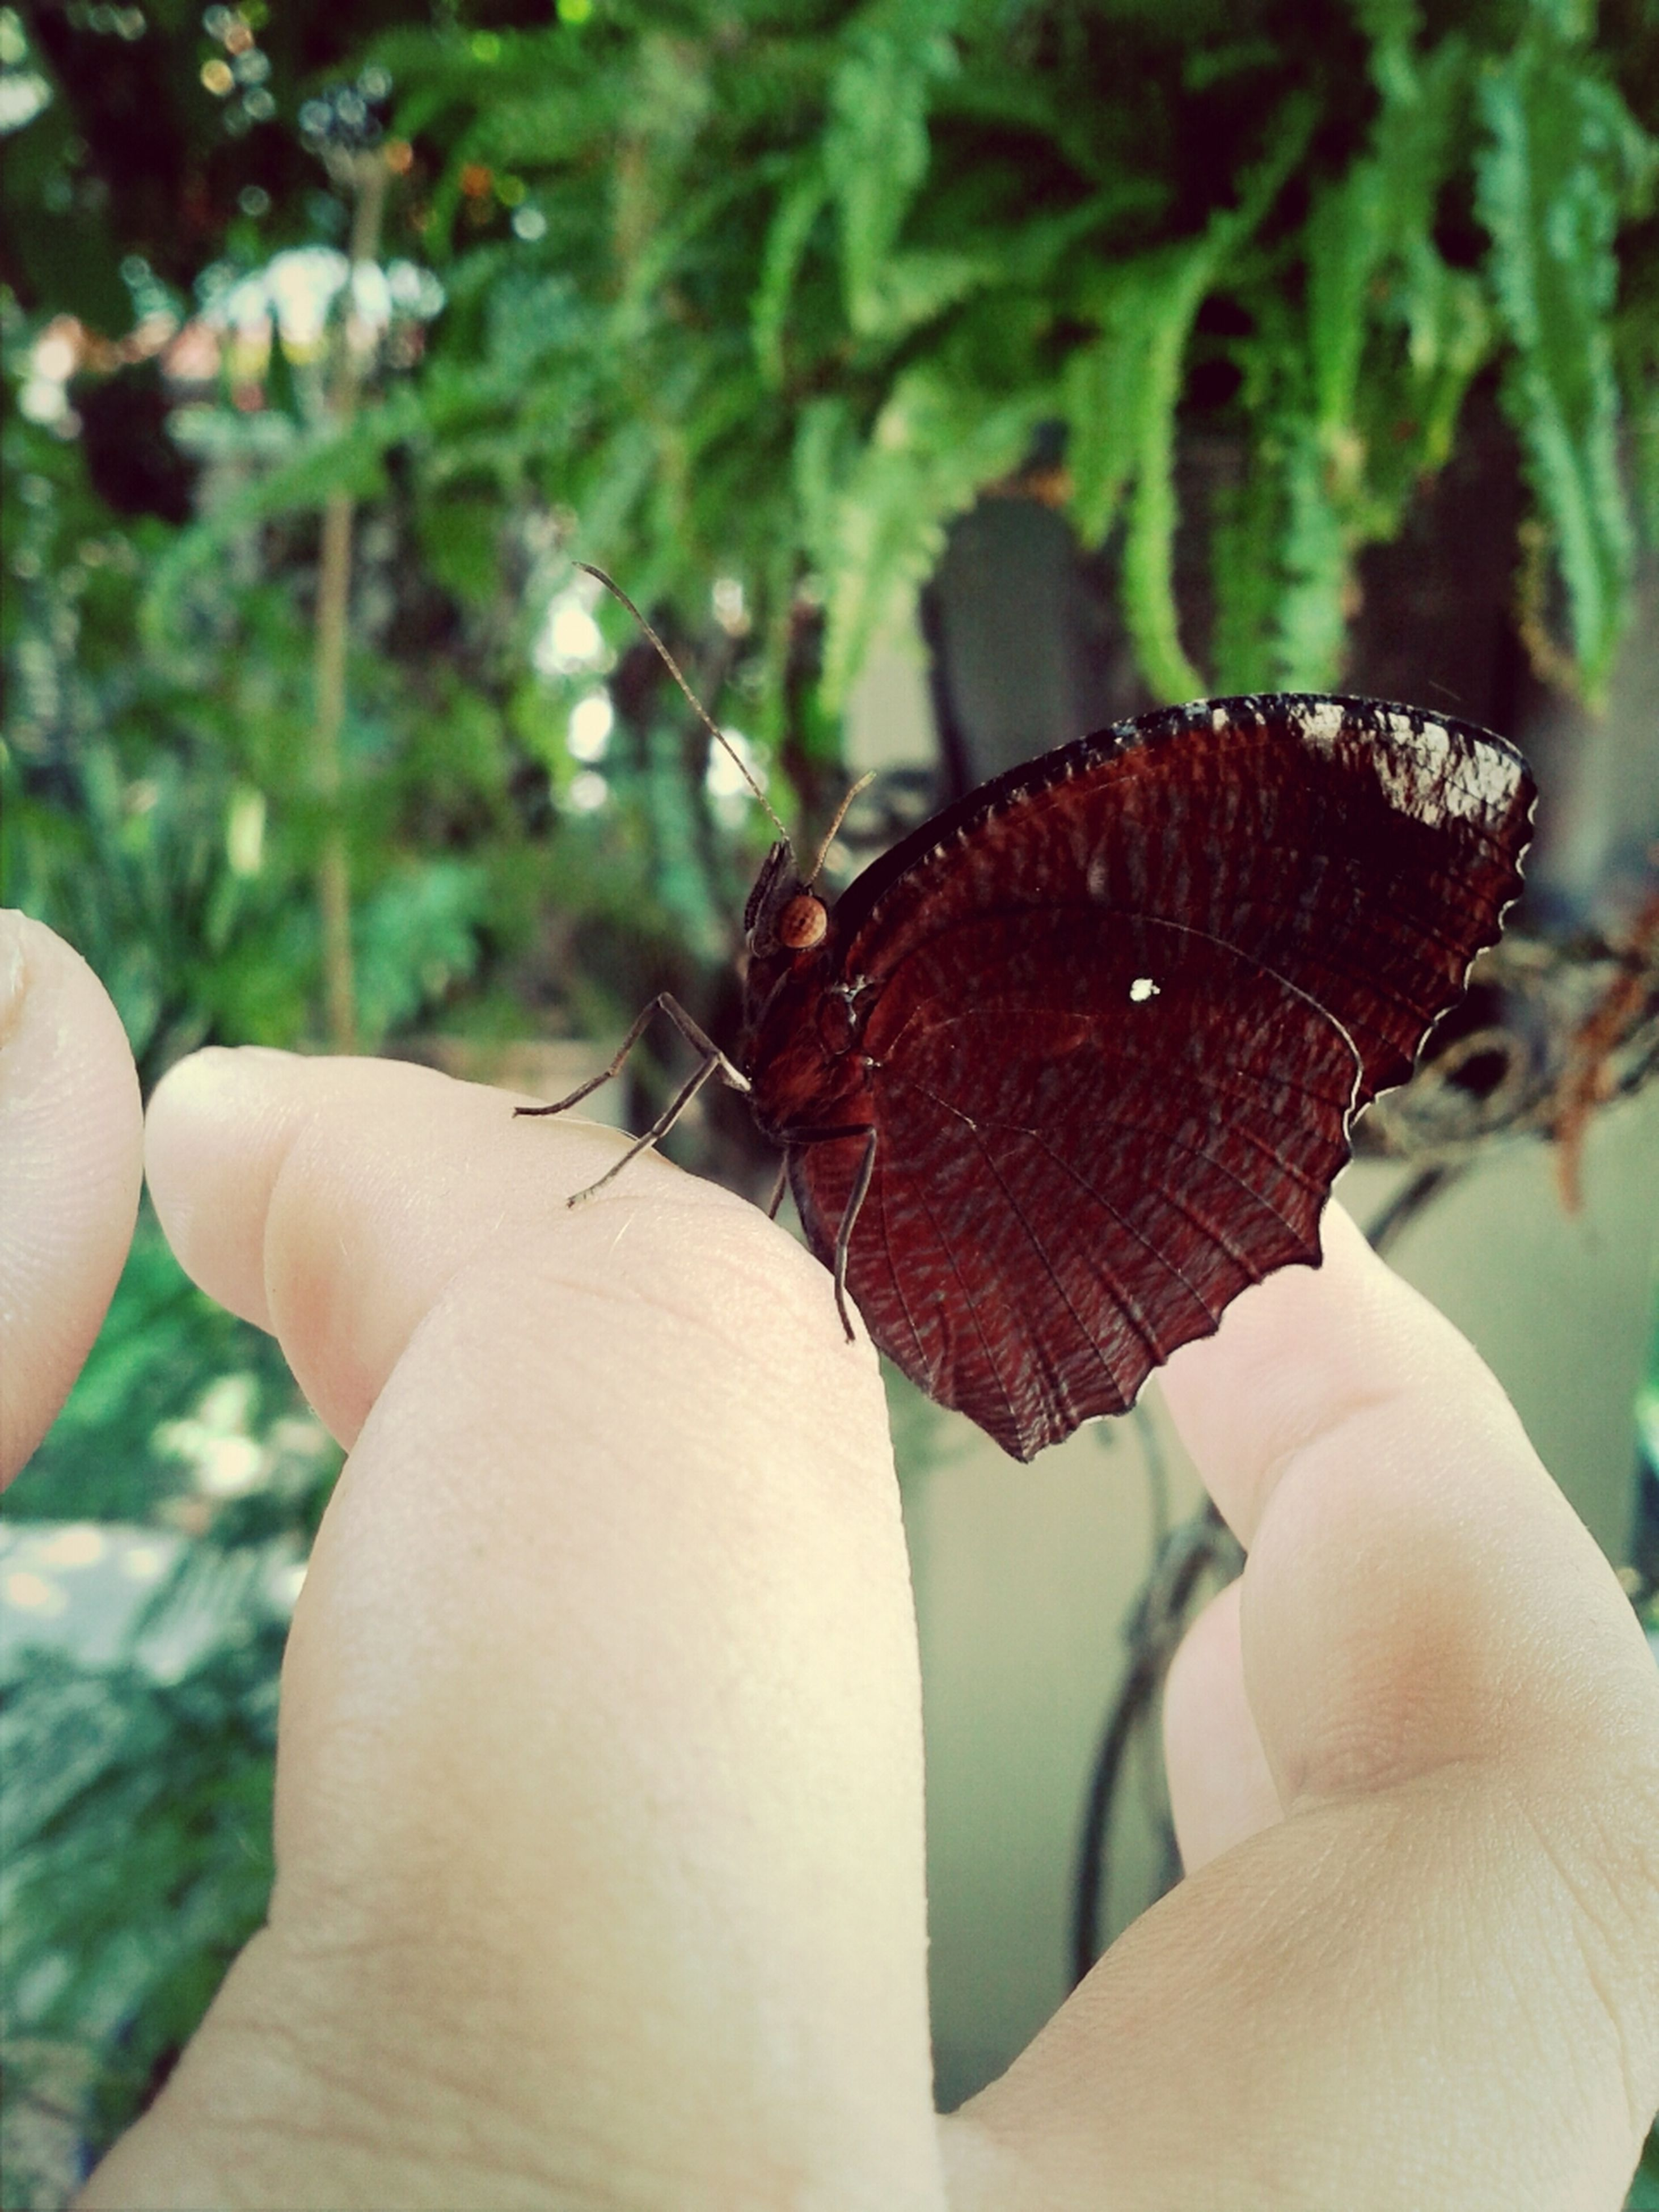 person, insect, holding, one animal, human finger, focus on foreground, part of, animal themes, close-up, cropped, unrecognizable person, animals in the wild, wildlife, butterfly - insect, personal perspective, butterfly, leisure activity